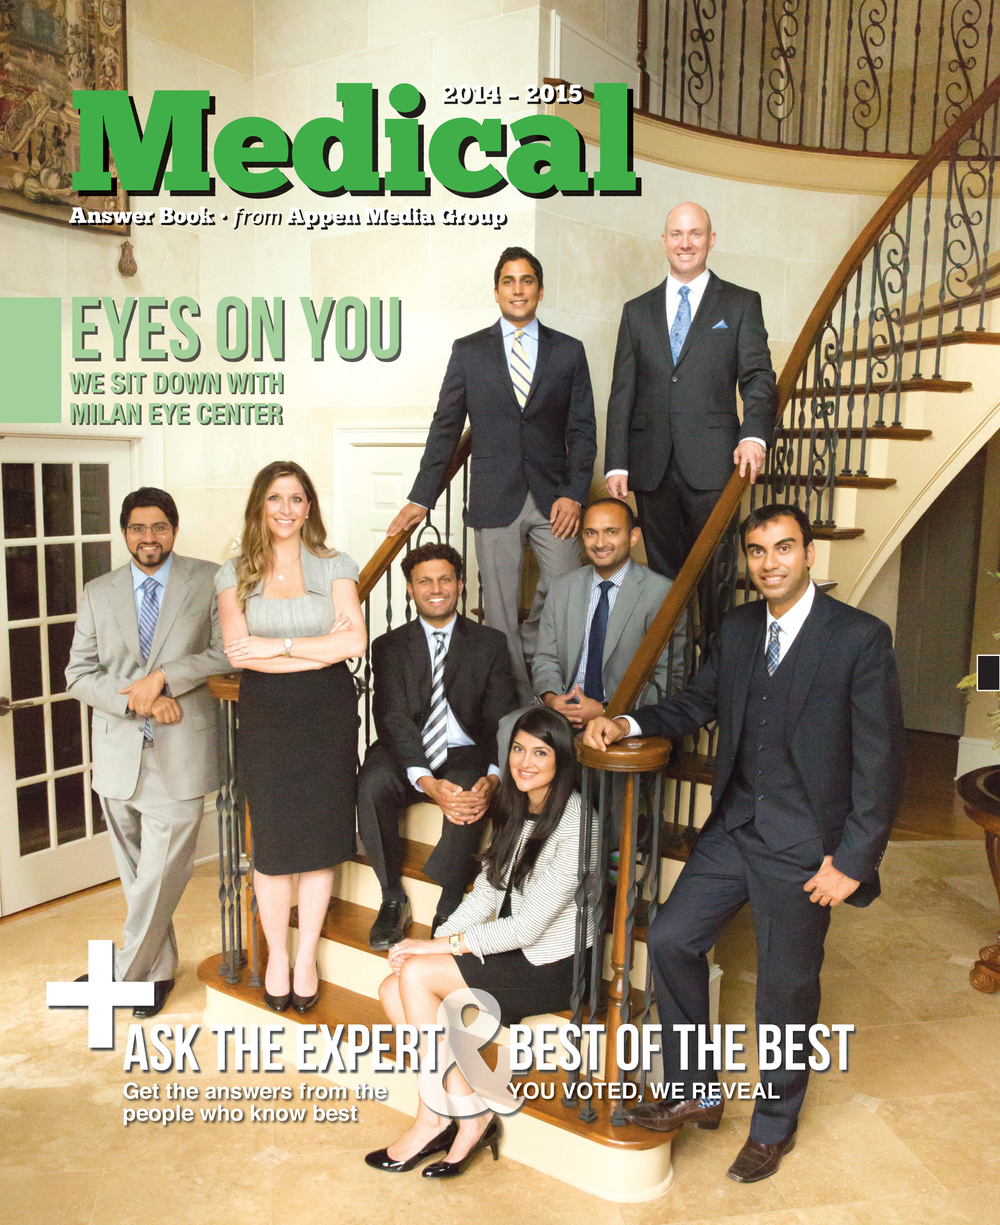 The time I brought Milan Eye Center to a friend's house and shot the cover of Medical Answer Book. Thanks again Kelly Stoks!